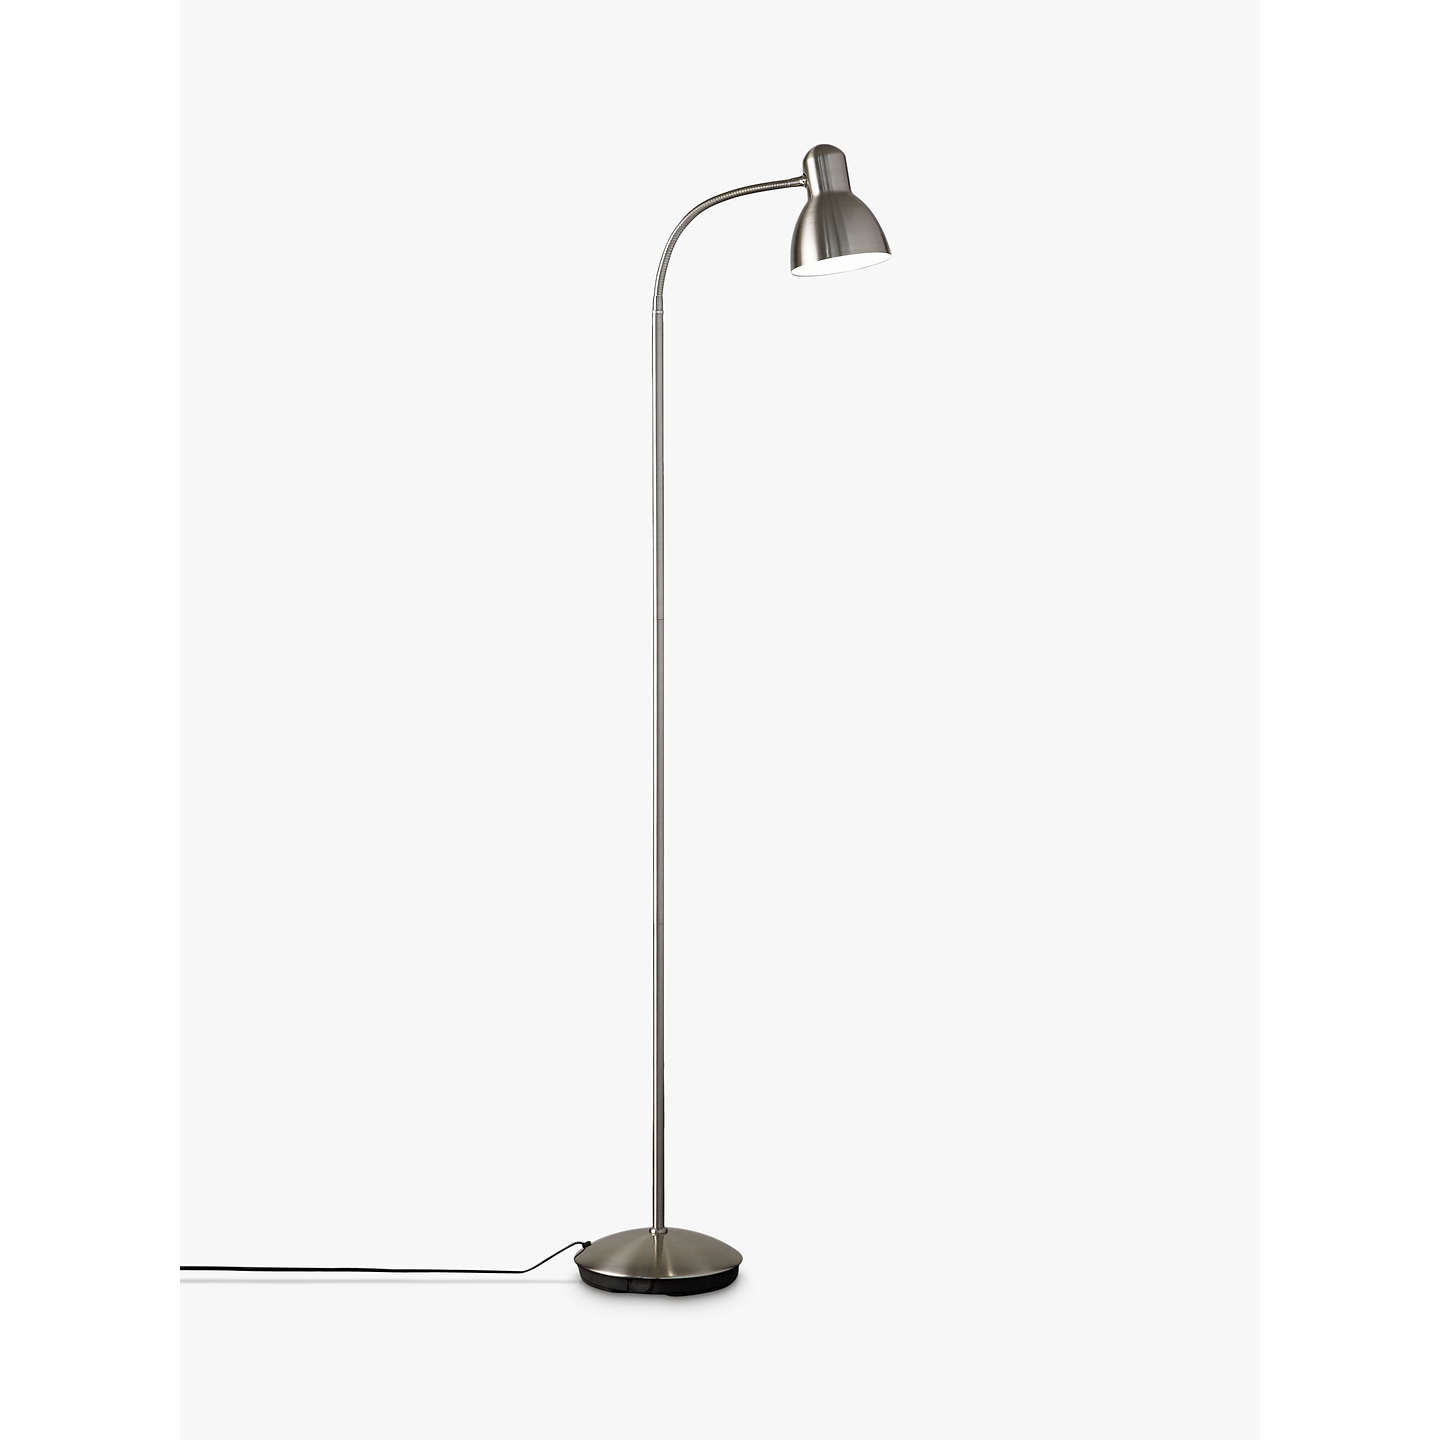 John lewis mykki led floor lamp at john lewis buyjohn lewis mykki led floor lamp satin nickel online at johnlewis mozeypictures Choice Image